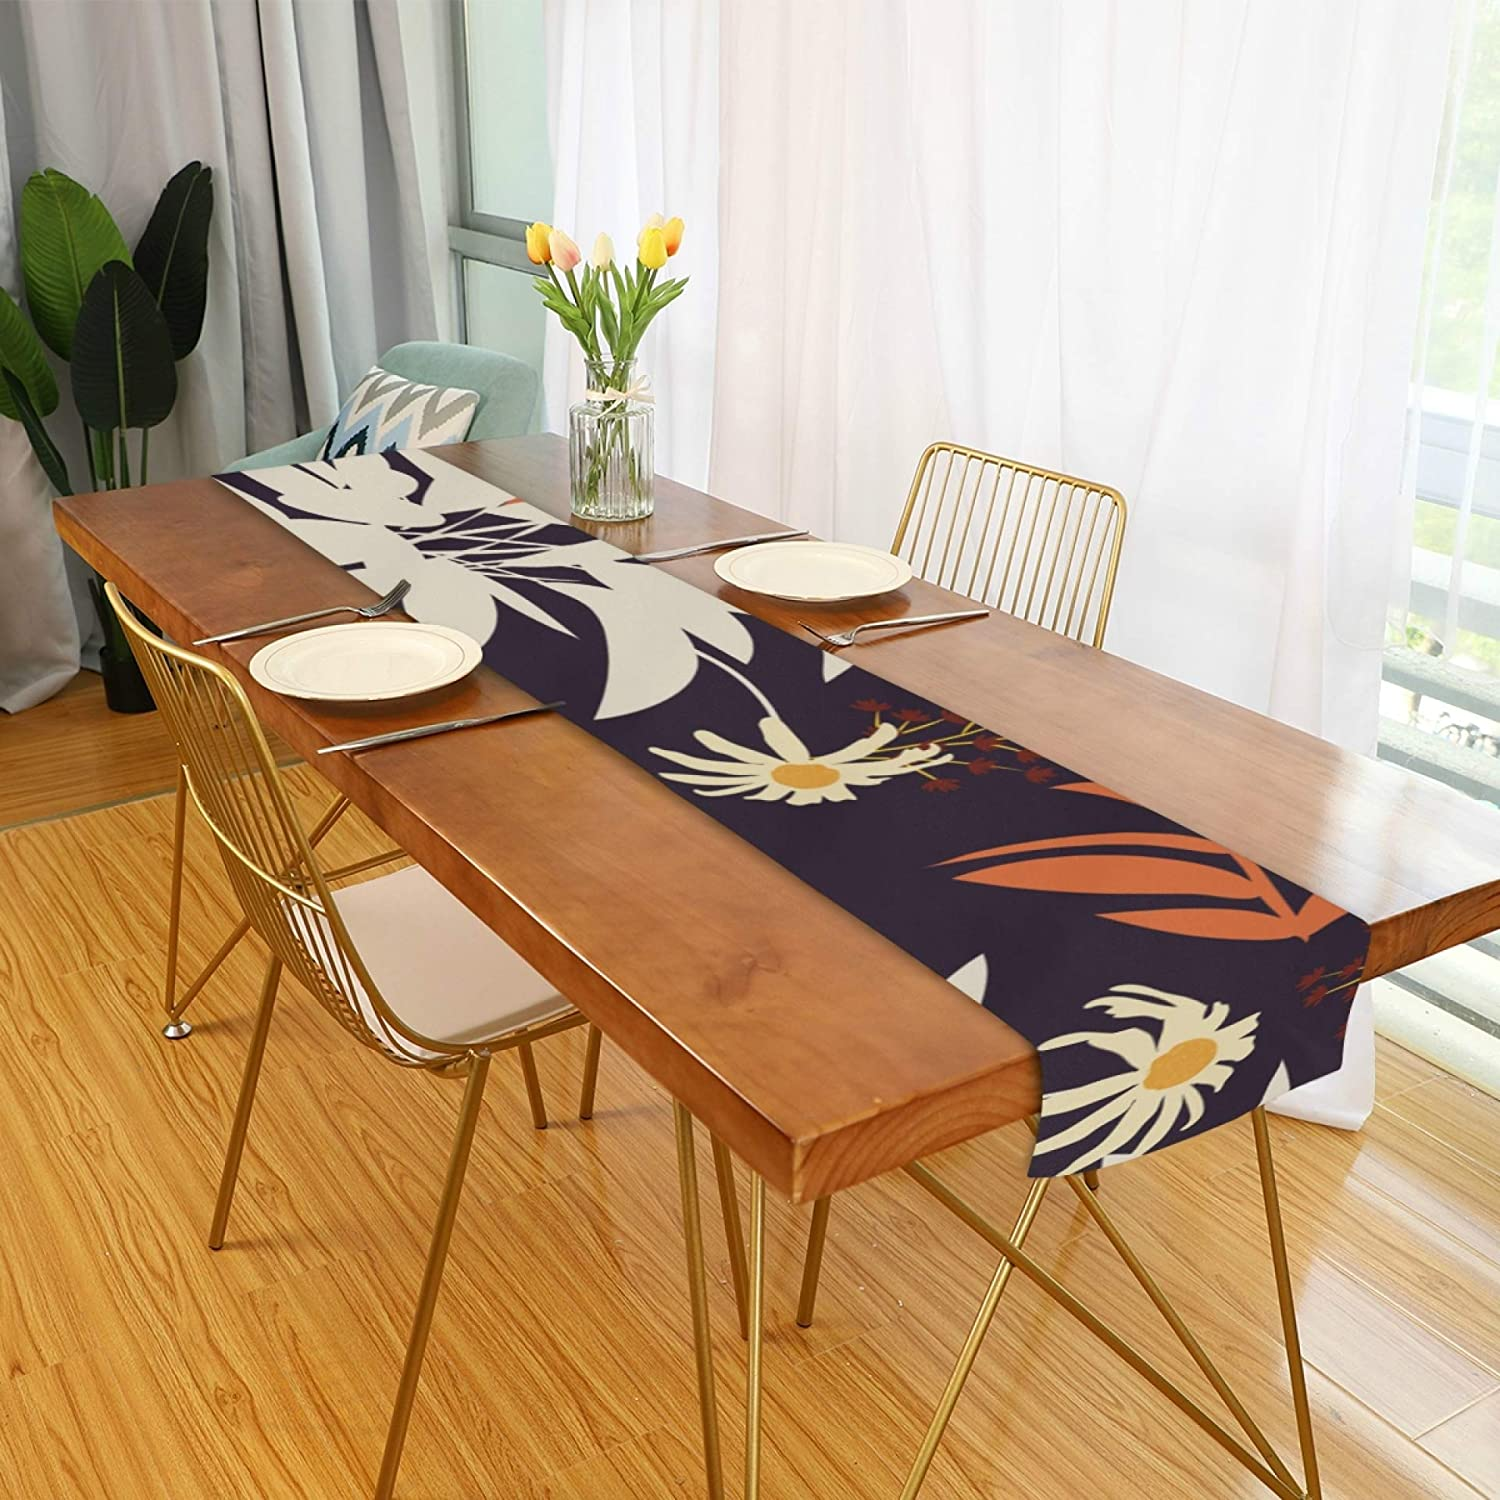 Amazon Com Farmhouse Table Runner For Home Kitchen Dining Table Coffee Table Decor Farmhouse Table Runners Pattern Leaves Flower Colorful Tropical Table Linens For Indoor Outdoor Everyday Uses 13x90in Home Kitchen